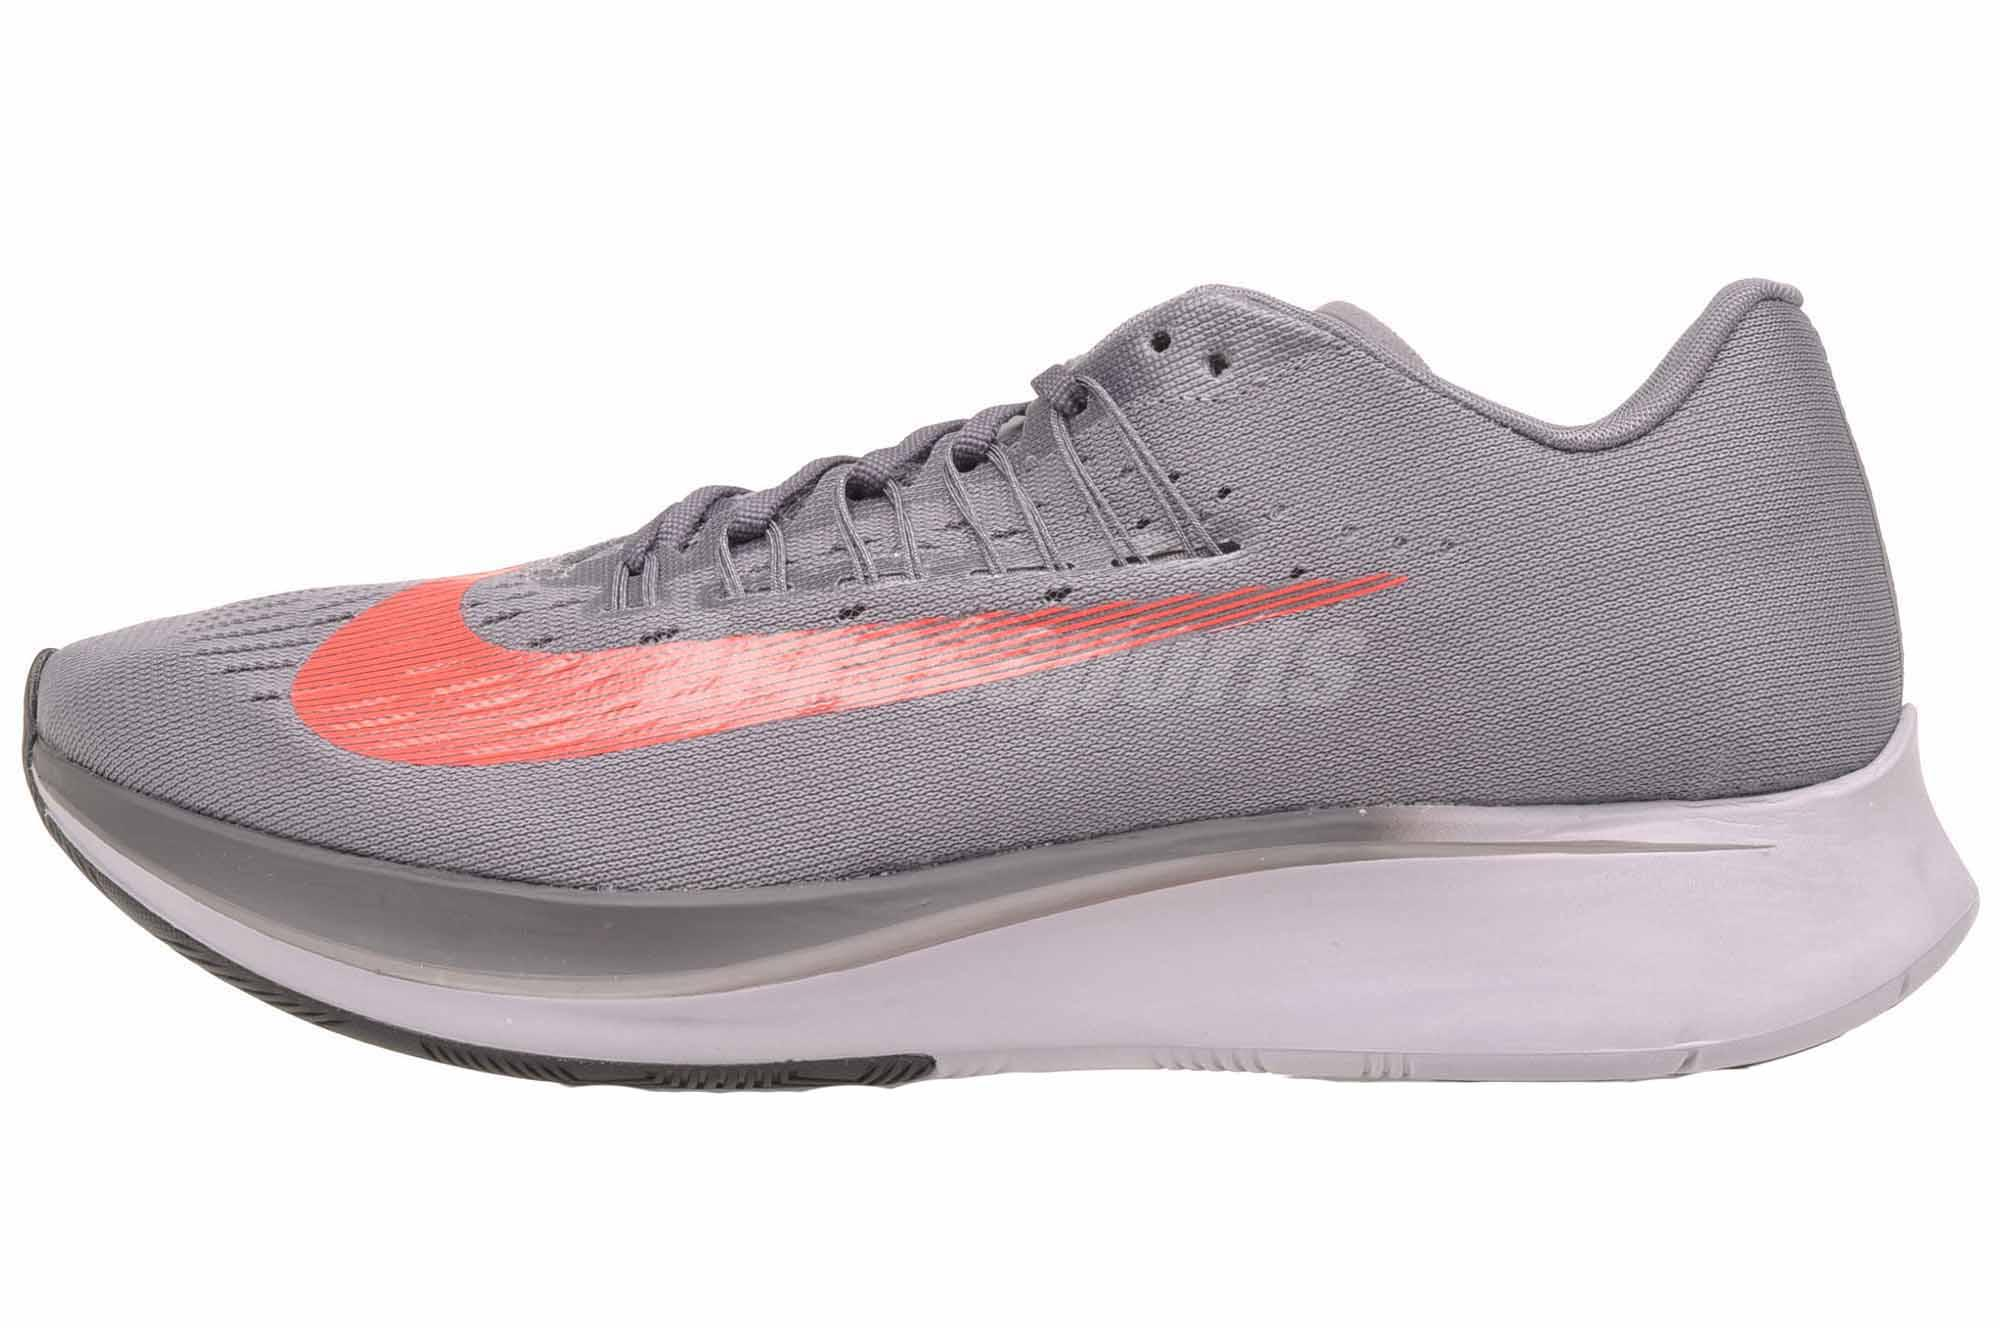 reputable site 6d78f 1ee9c Details about Nike Zoom Fly Running Mens Gunsmoke Bright Crimson Shoes  880848-004